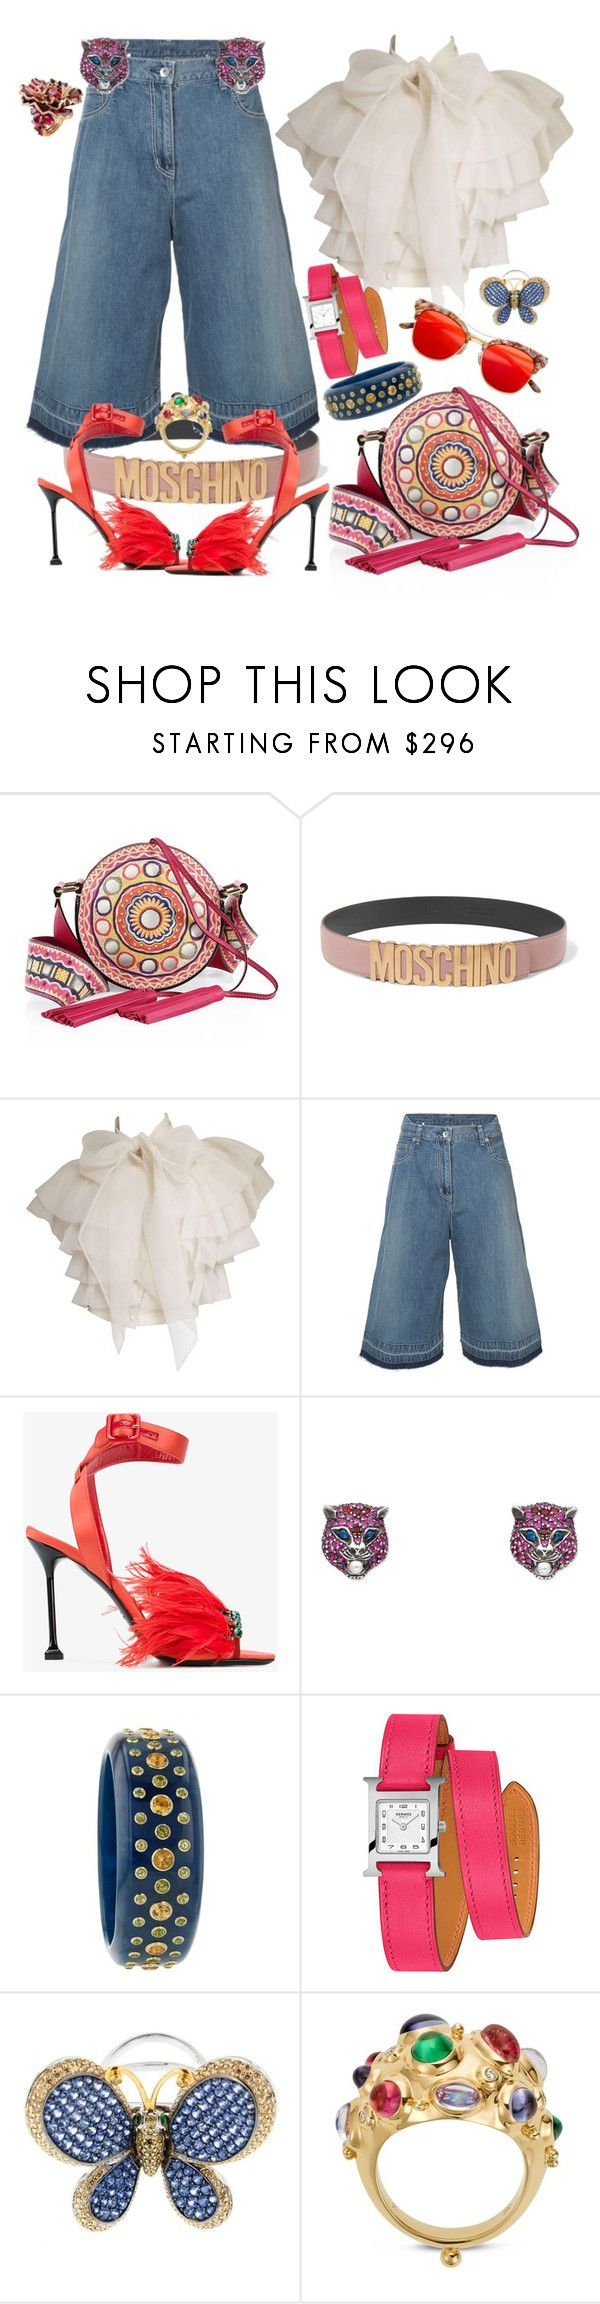 """Circles.Colors.Choas.Charged"" by jeniferkcarsrud ❤ liked on Polyvore featuring Moschino, Sacai, Miu Miu, Gucci, Mark Davis, Hermès, Zorab, Passionata and Temple St. Clair"